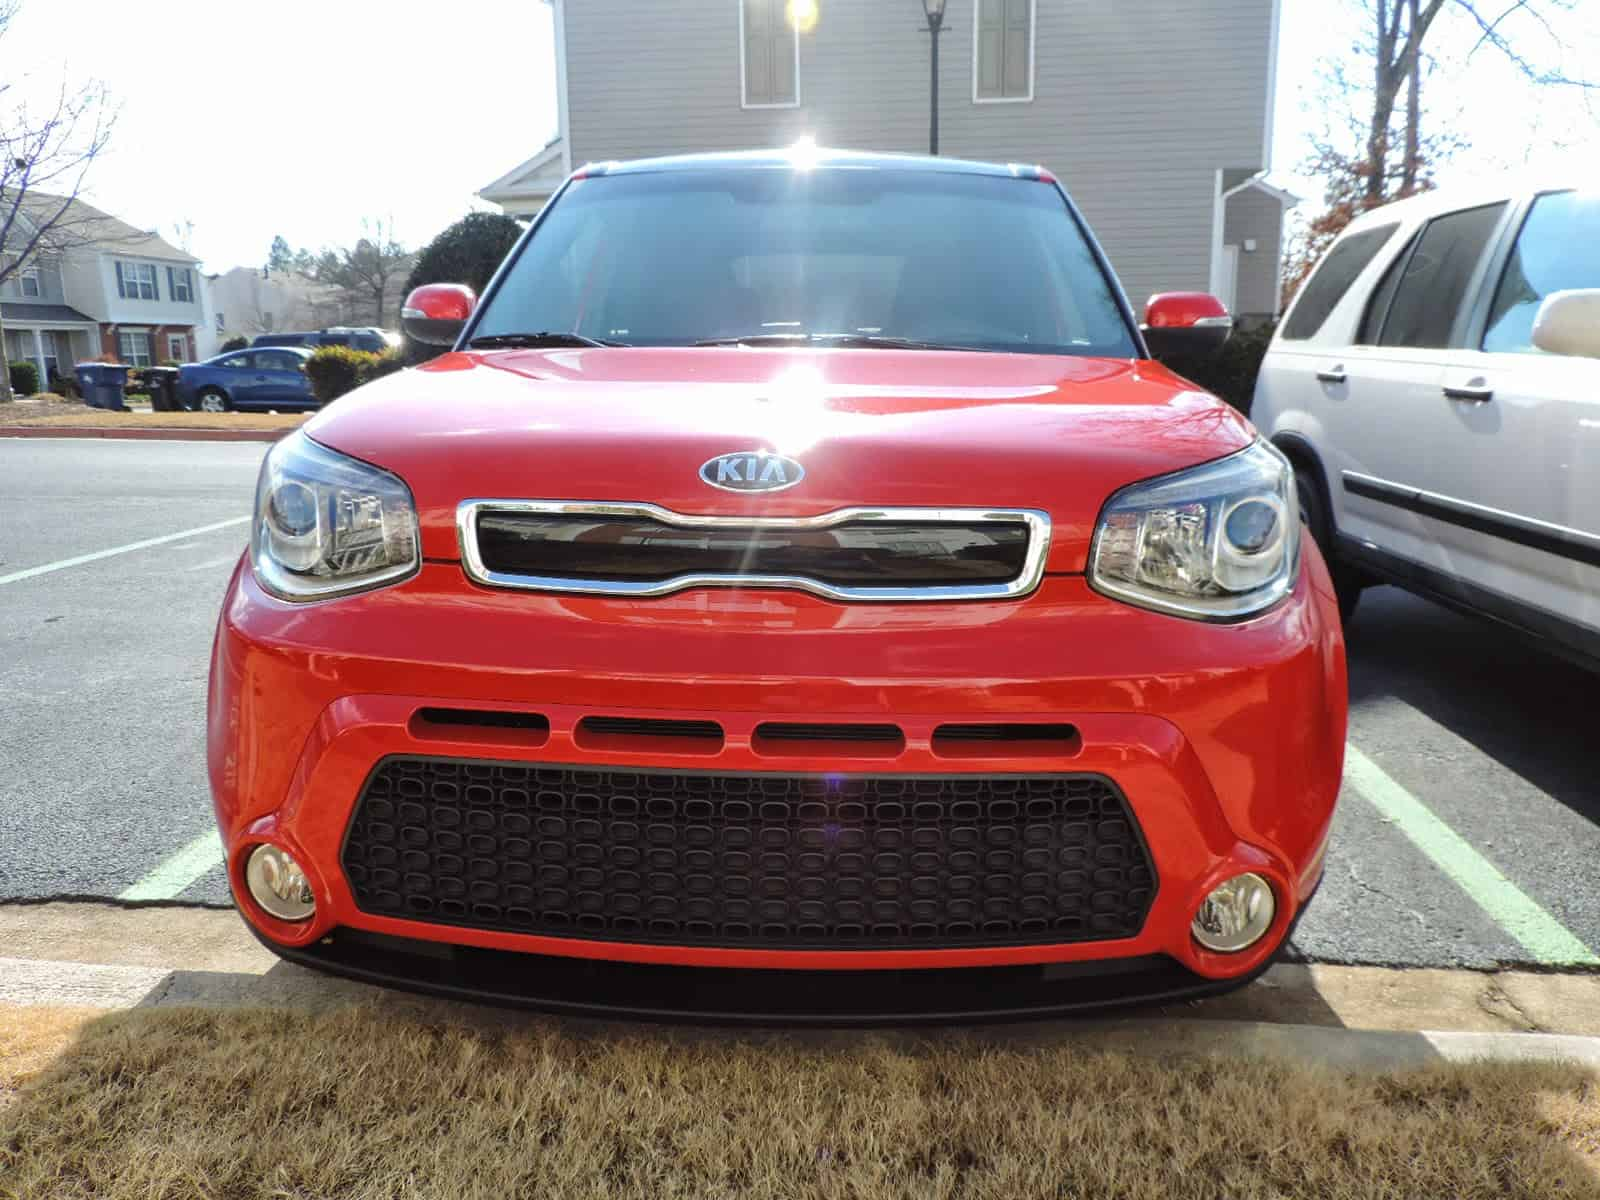 2014 Kia Soul Affordable SUV Review